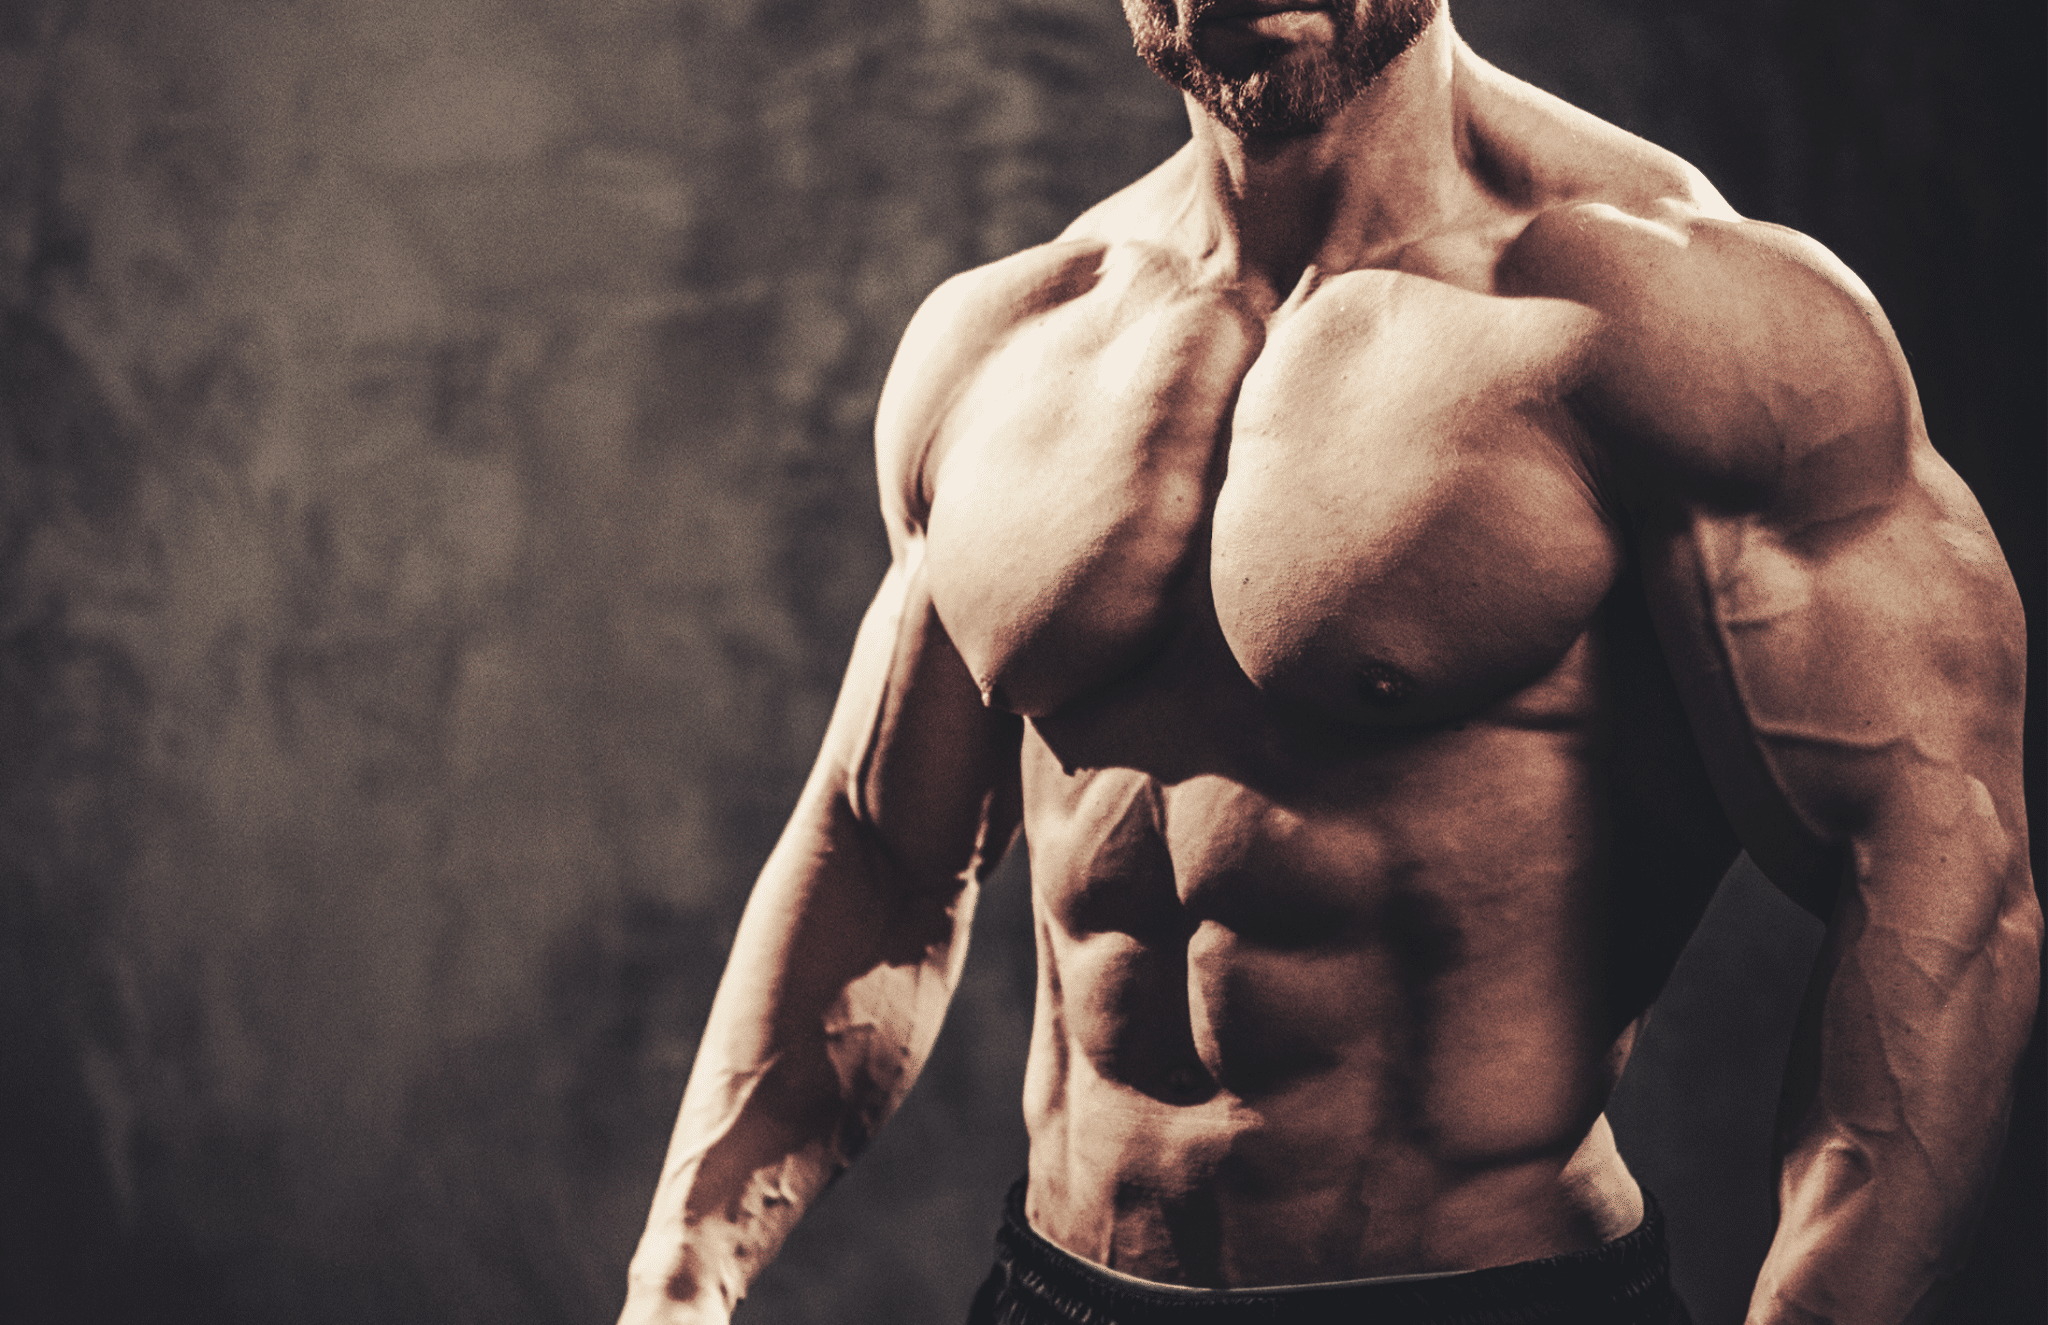 6 Week Workout Program To Build Muscle (With PDF)